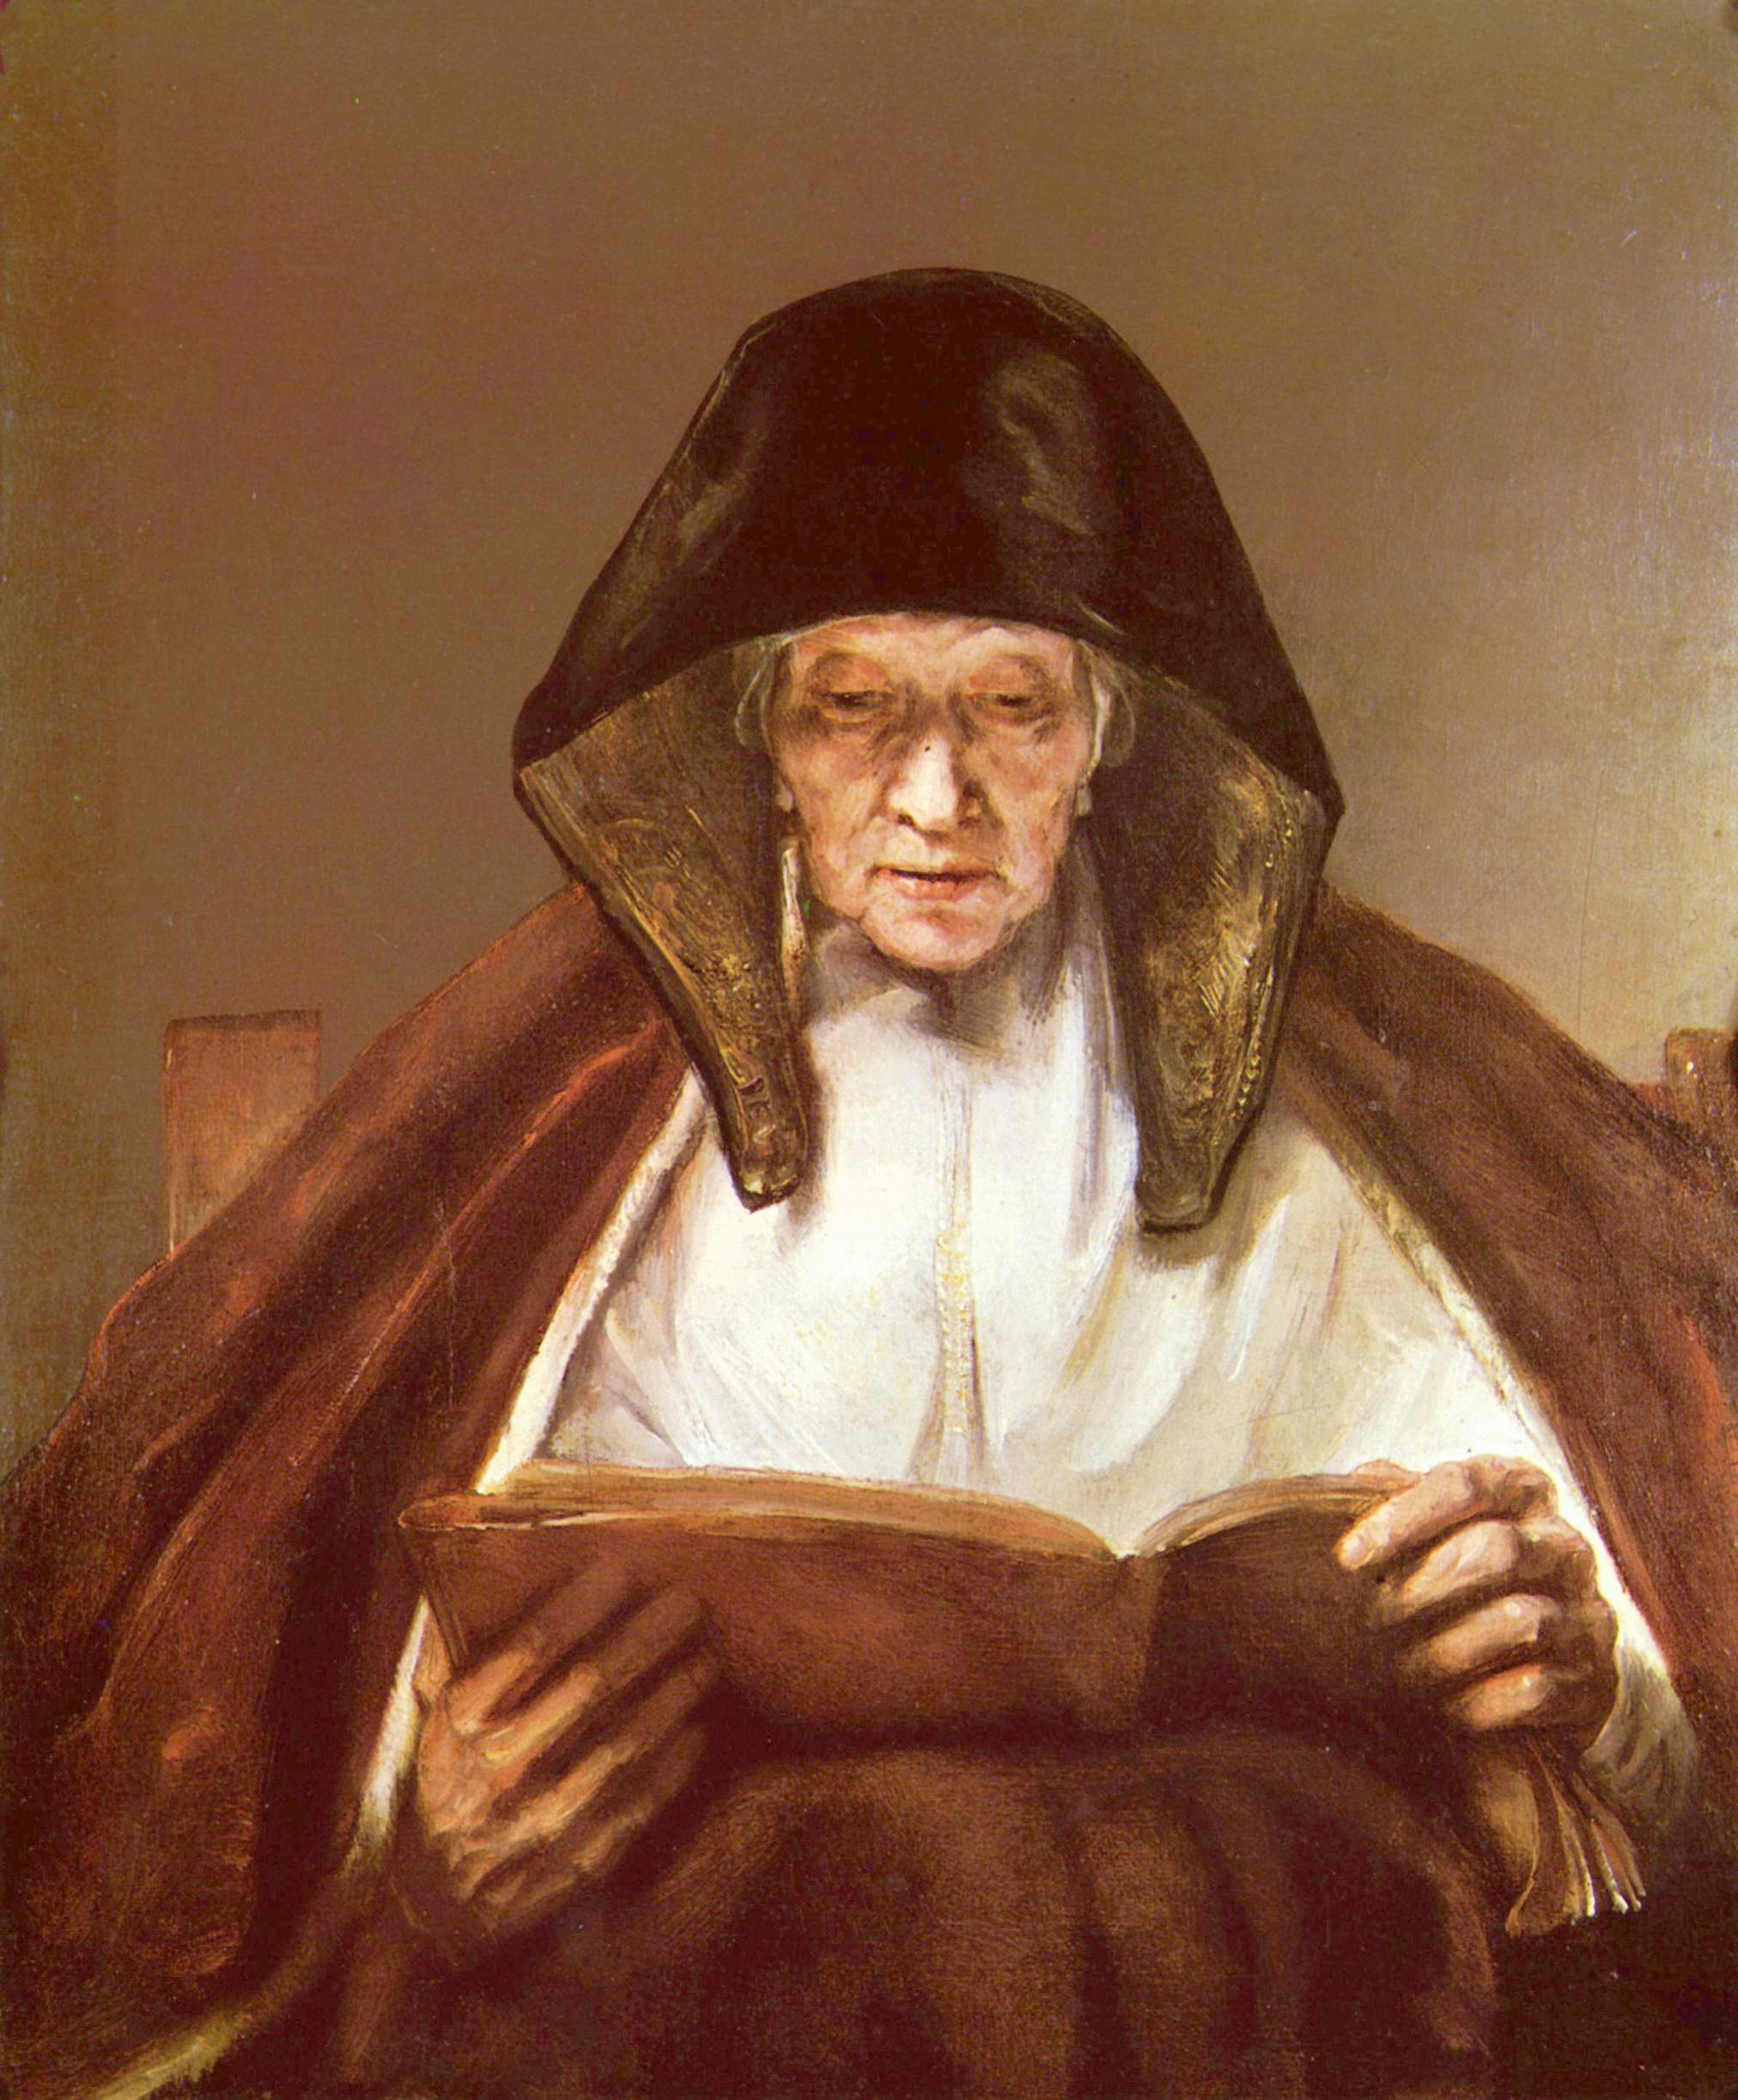 Rembrandt, Old woman reading, owned by the Duke of Buccleuch